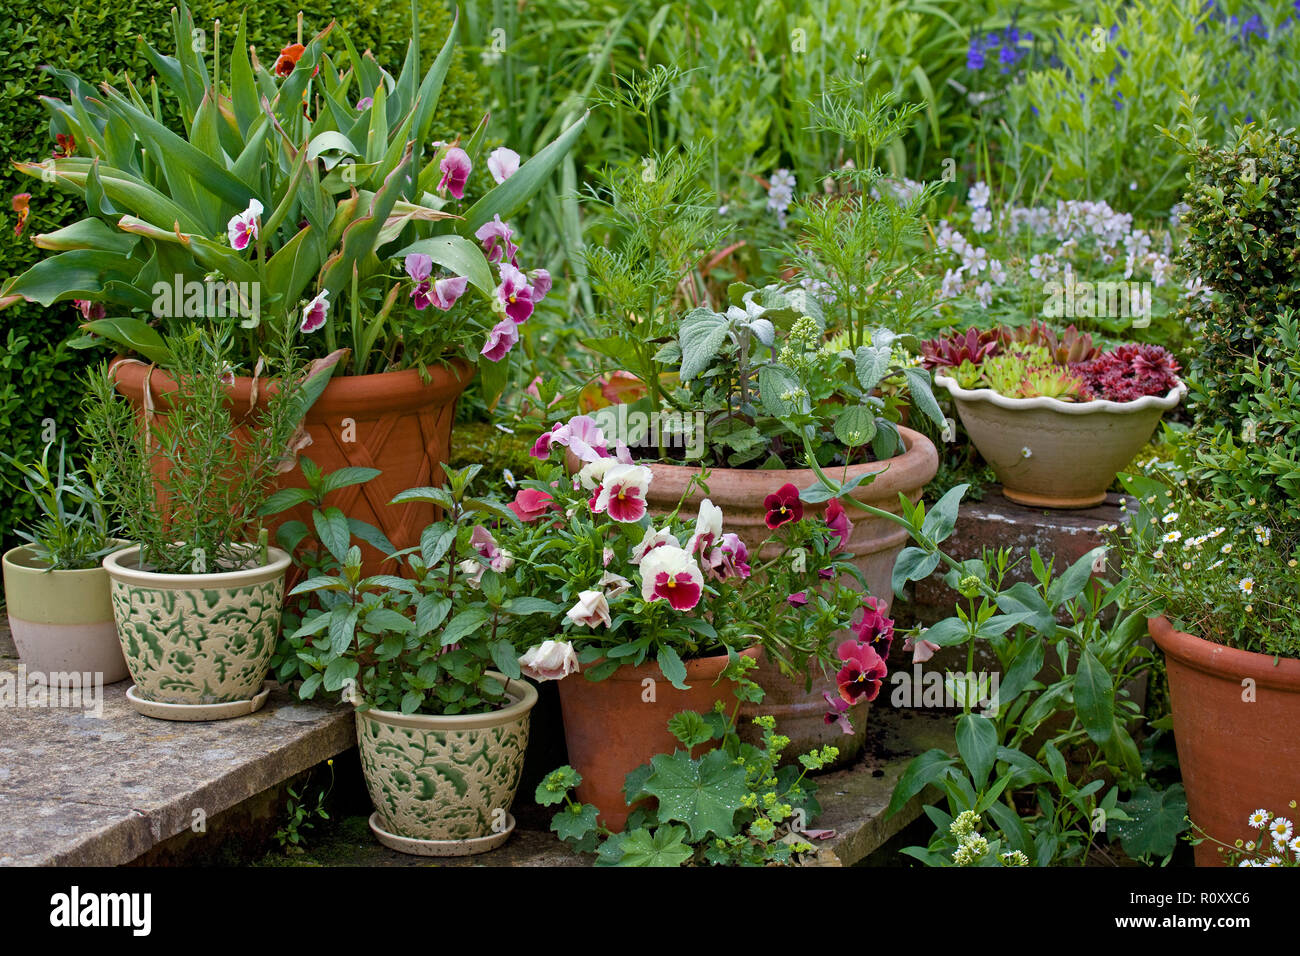 A Variety Of Potted Plants Outside Stock Photo 224326262 Alamy